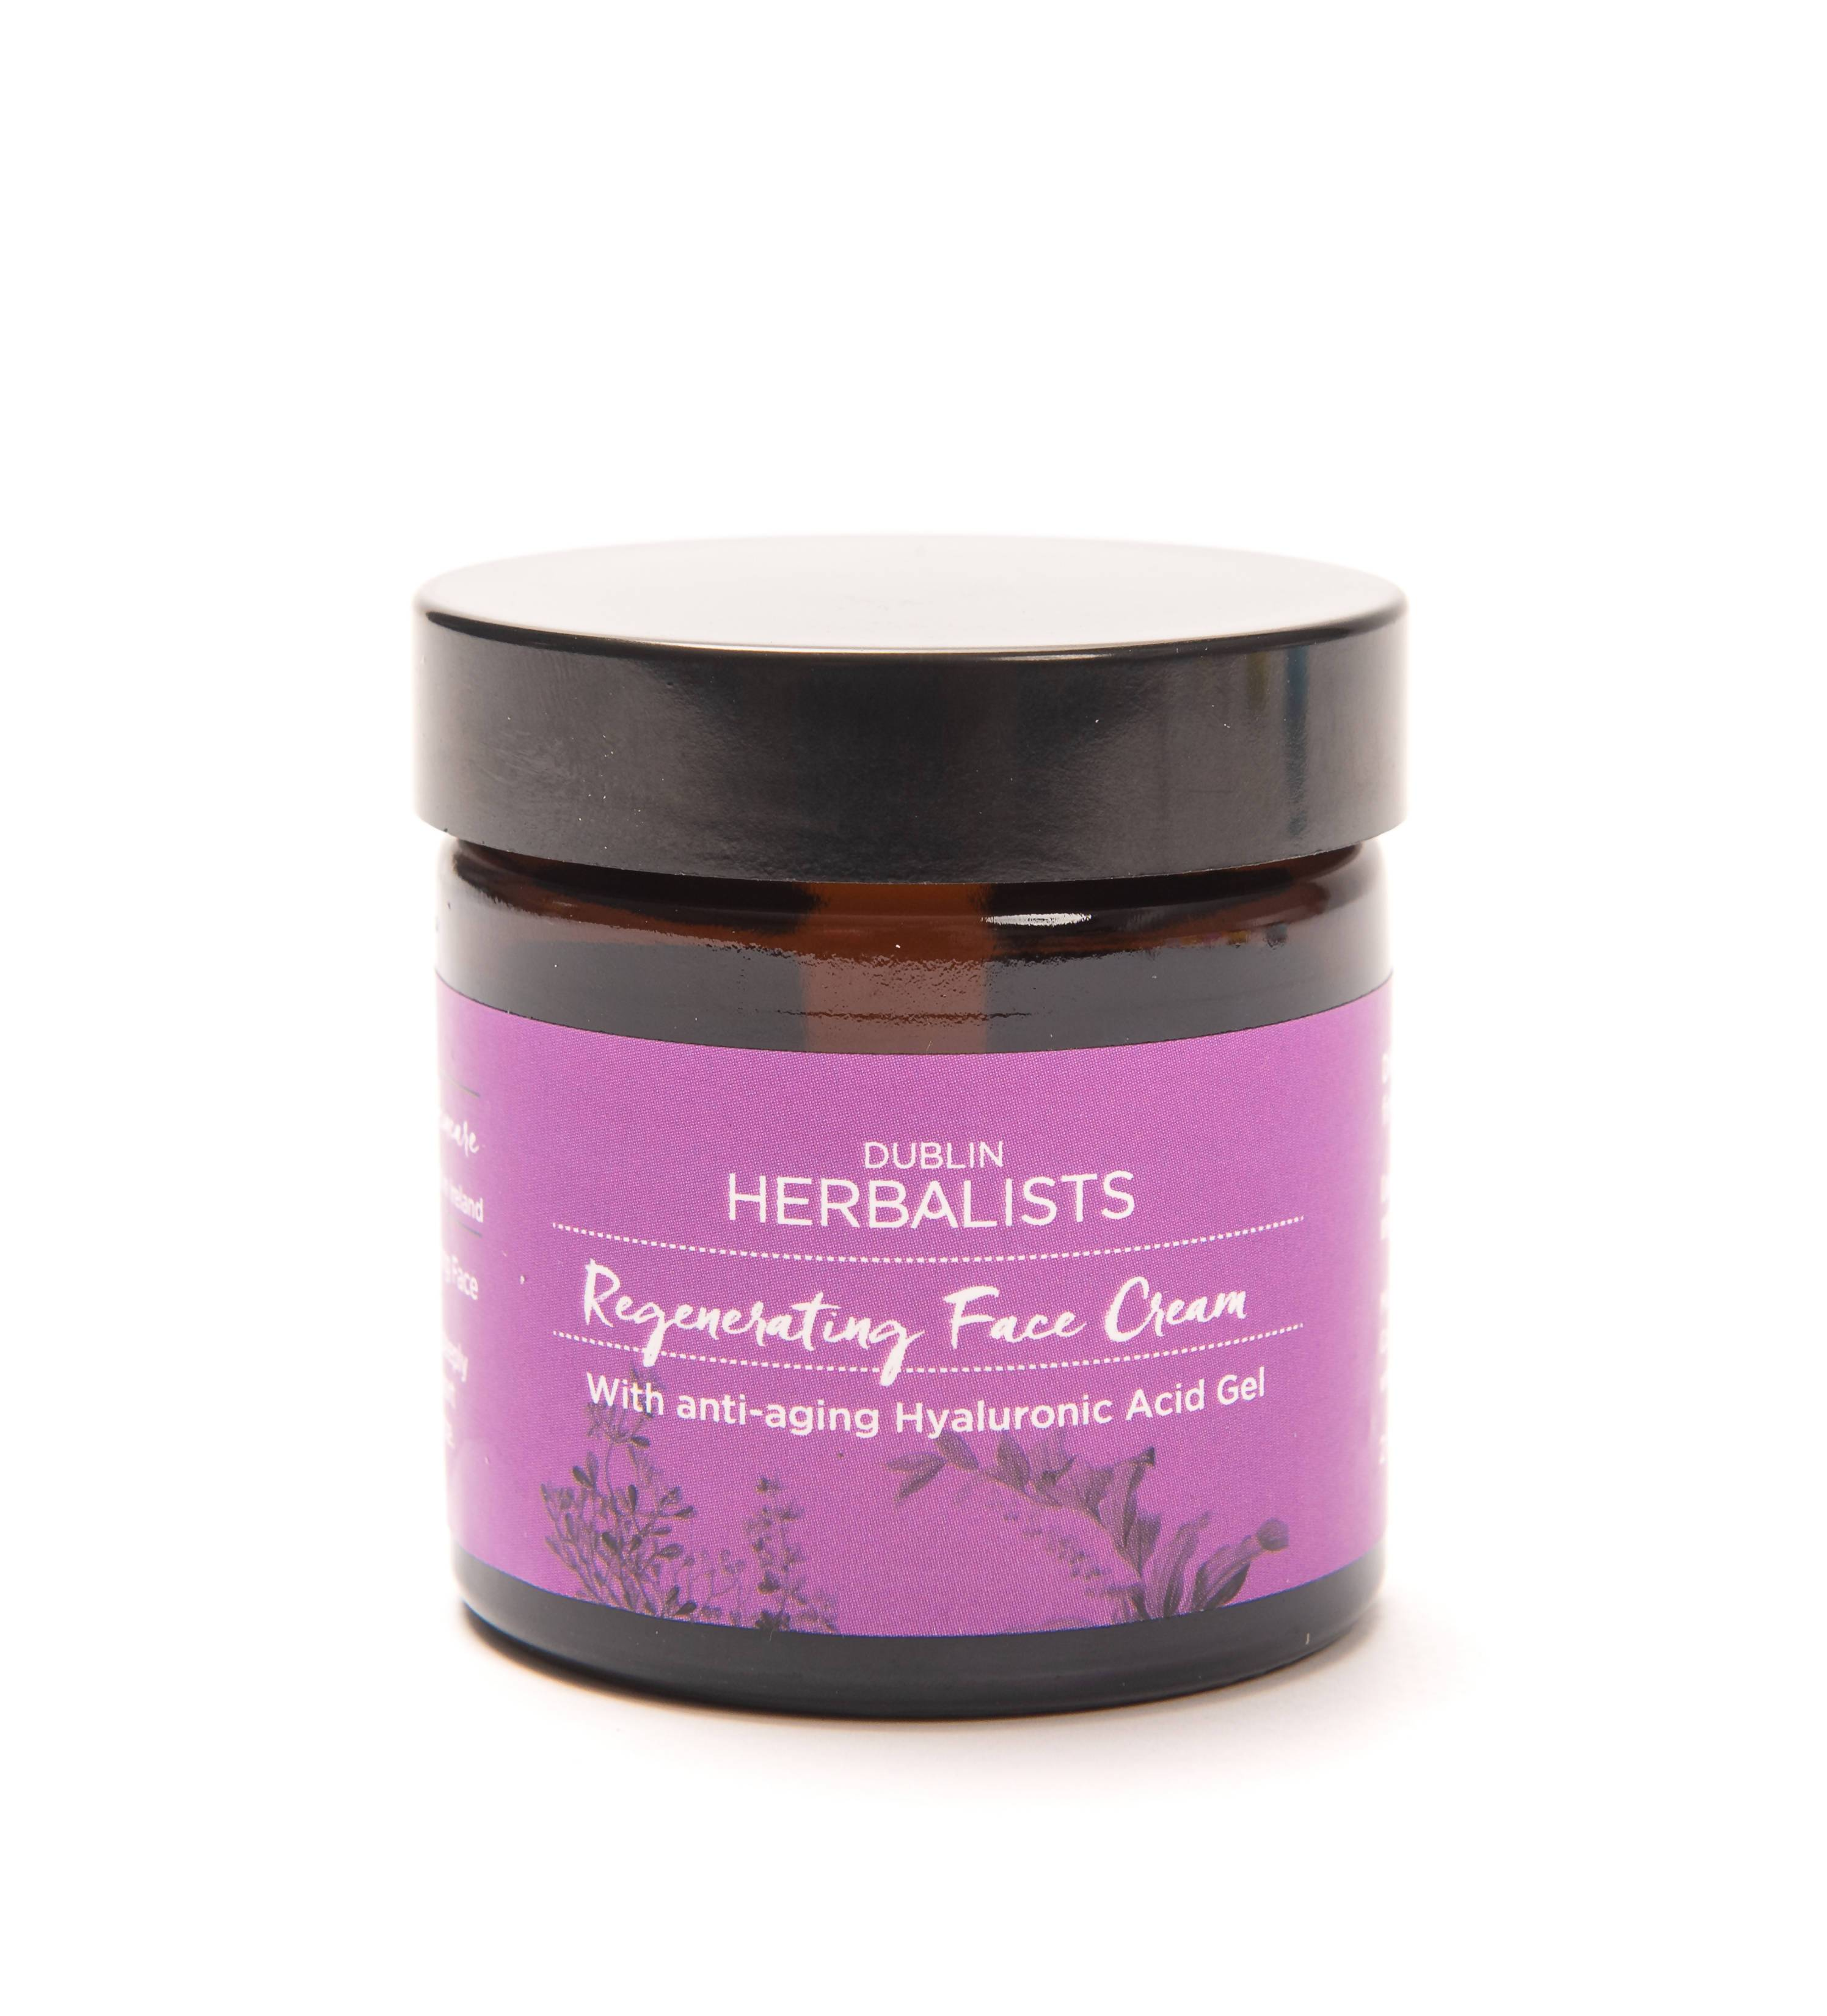 Dublin Herbalists - Regenerating Face Cream - New Arrivals - A GOOD POTION COMPANY - Naiise